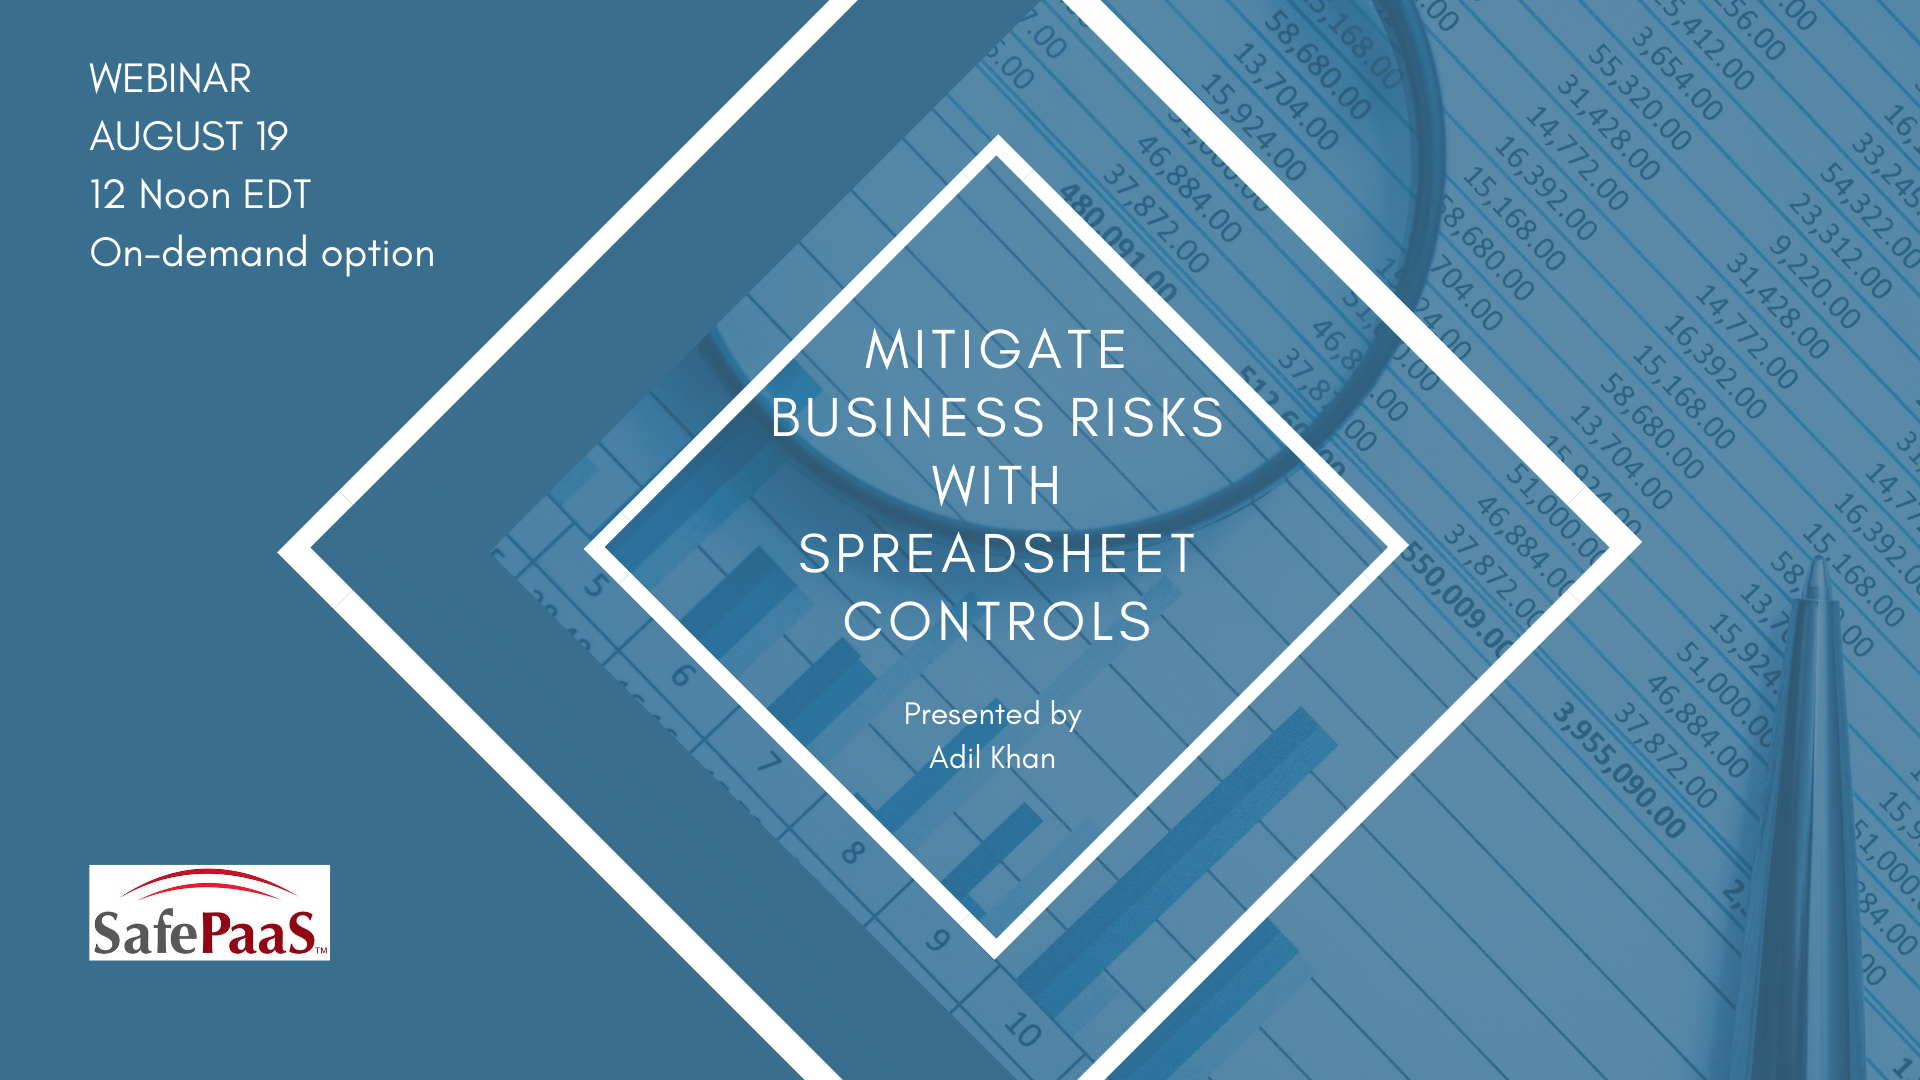 Control spreadsheet risk